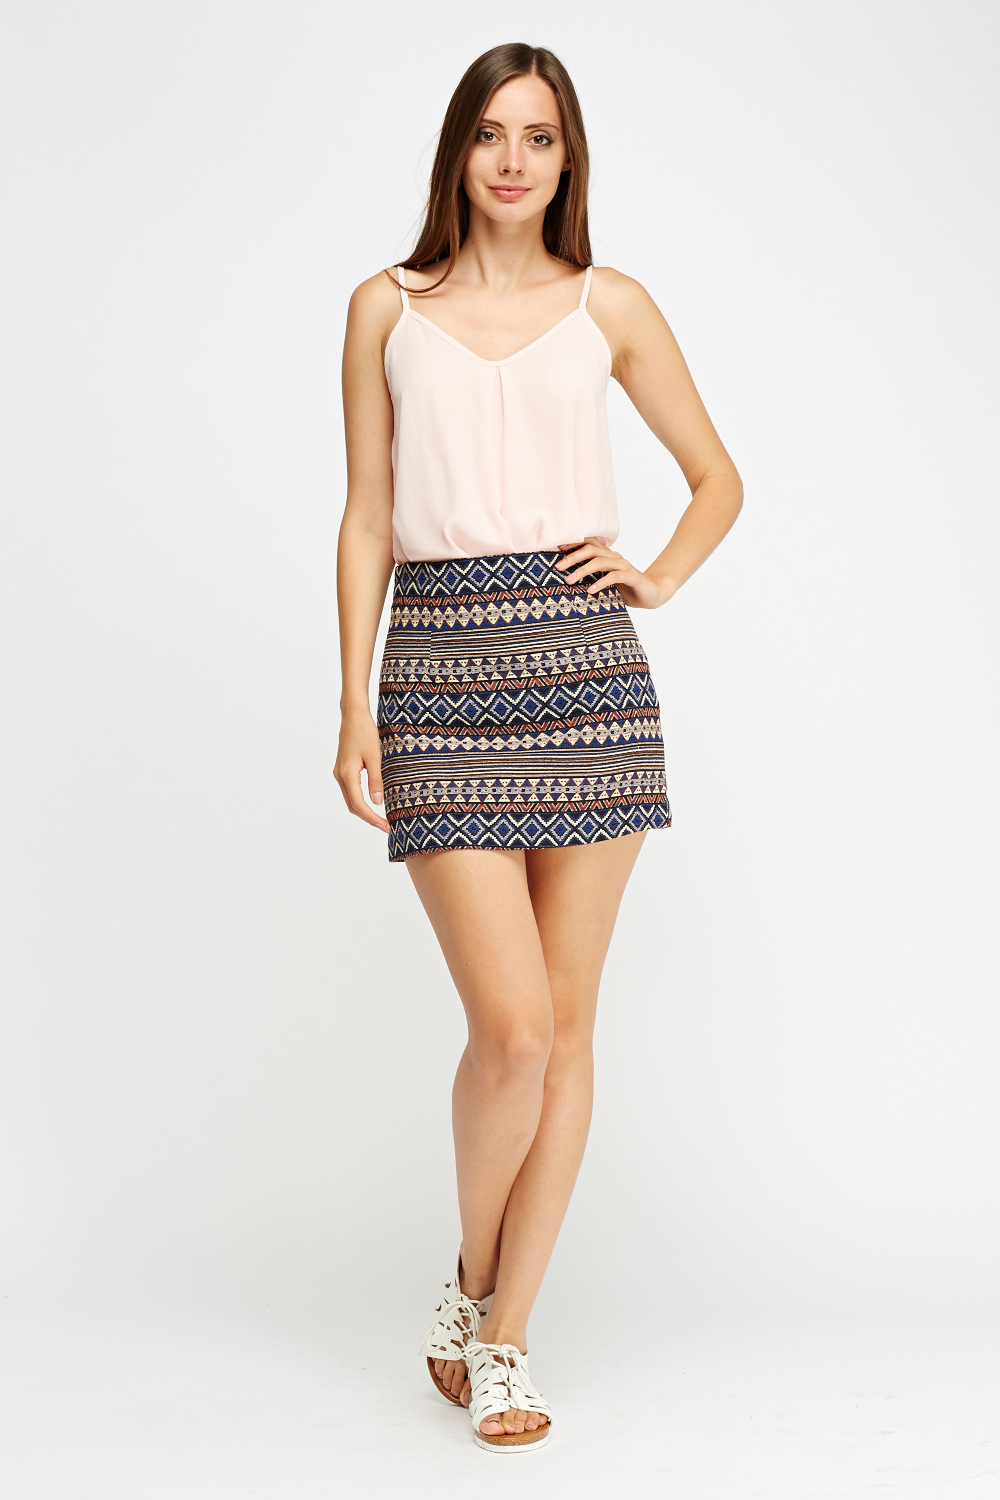 Mini Skirts | Buy cheap Mini Skirts for just £5 on ...